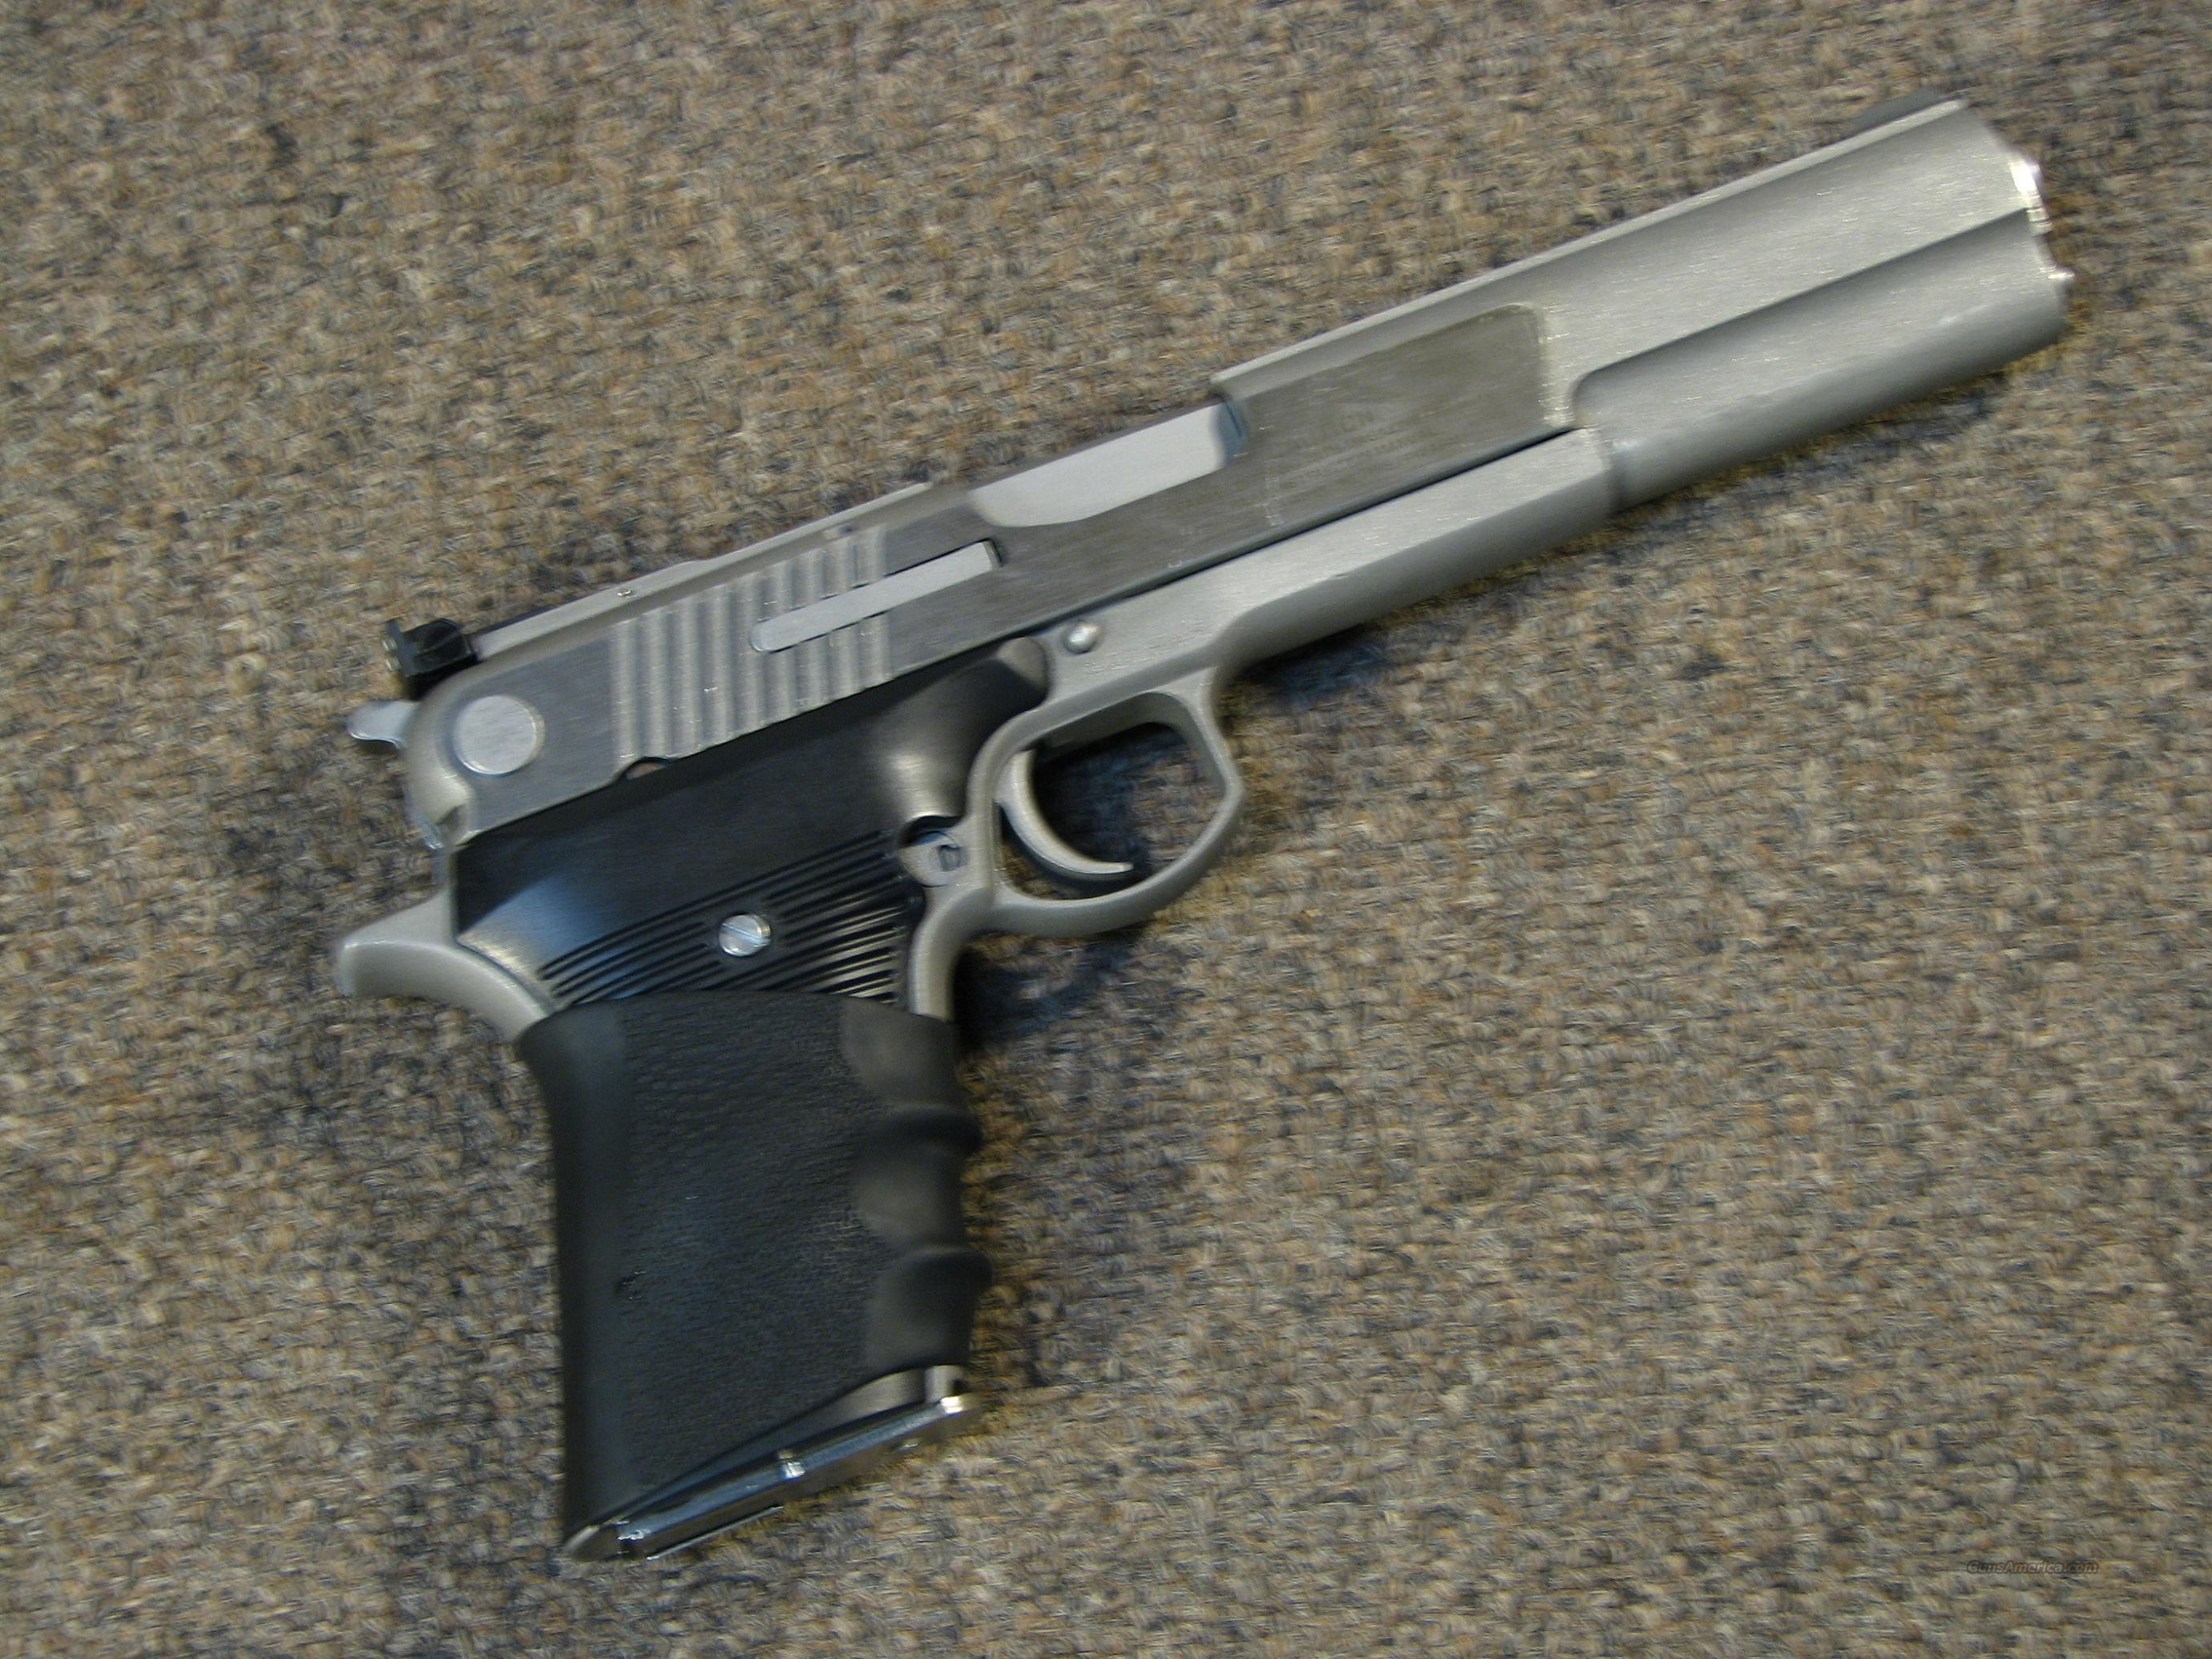 AMT AUTO-MAG IV .45 WIN MAG - STAINLESS!  Guns > Pistols > AMT Pistols > 1911 copies